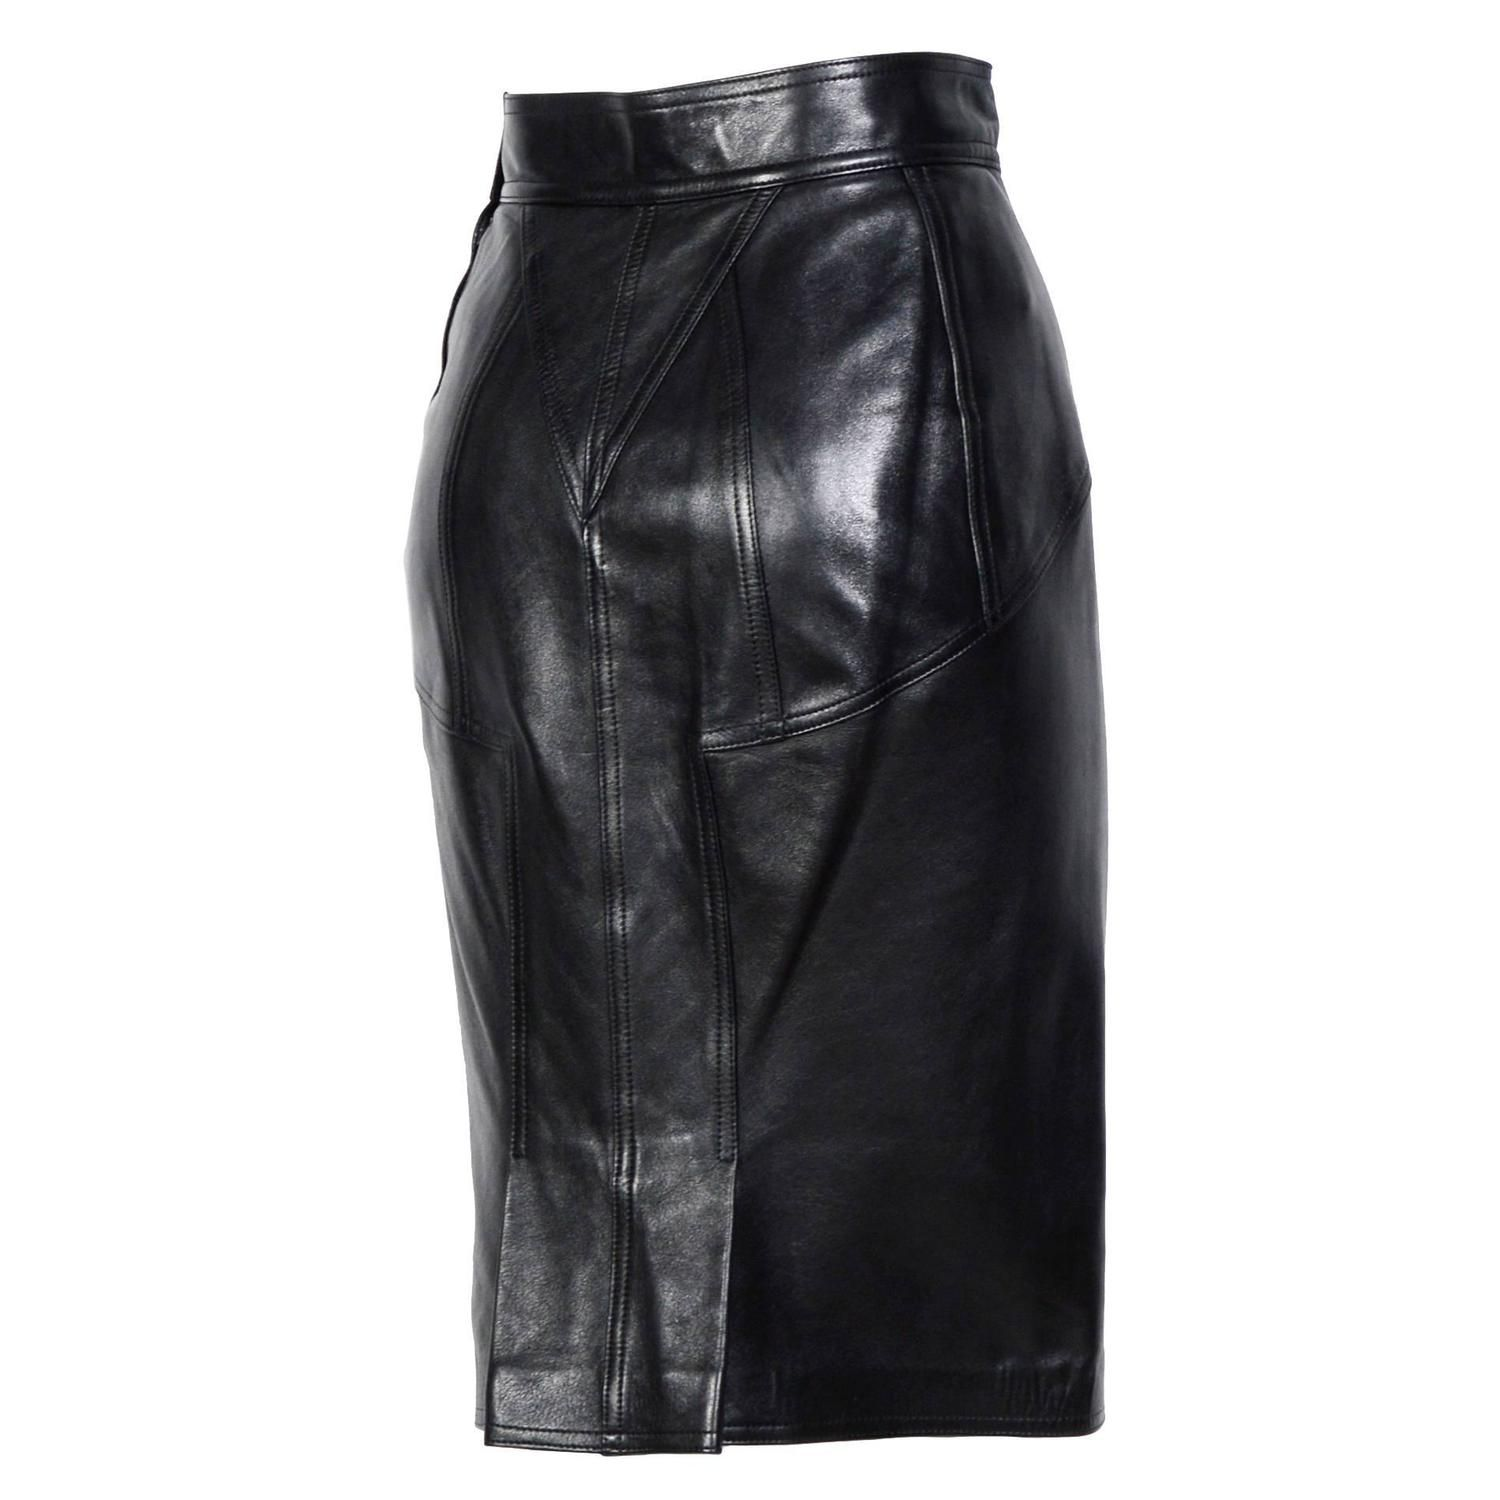 ALAIA Iconic Collection Vintage 80's leather Skirt   From a collection of rare vintage skirts at https://www.1stdibs.com/fashion/clothing/skirts/